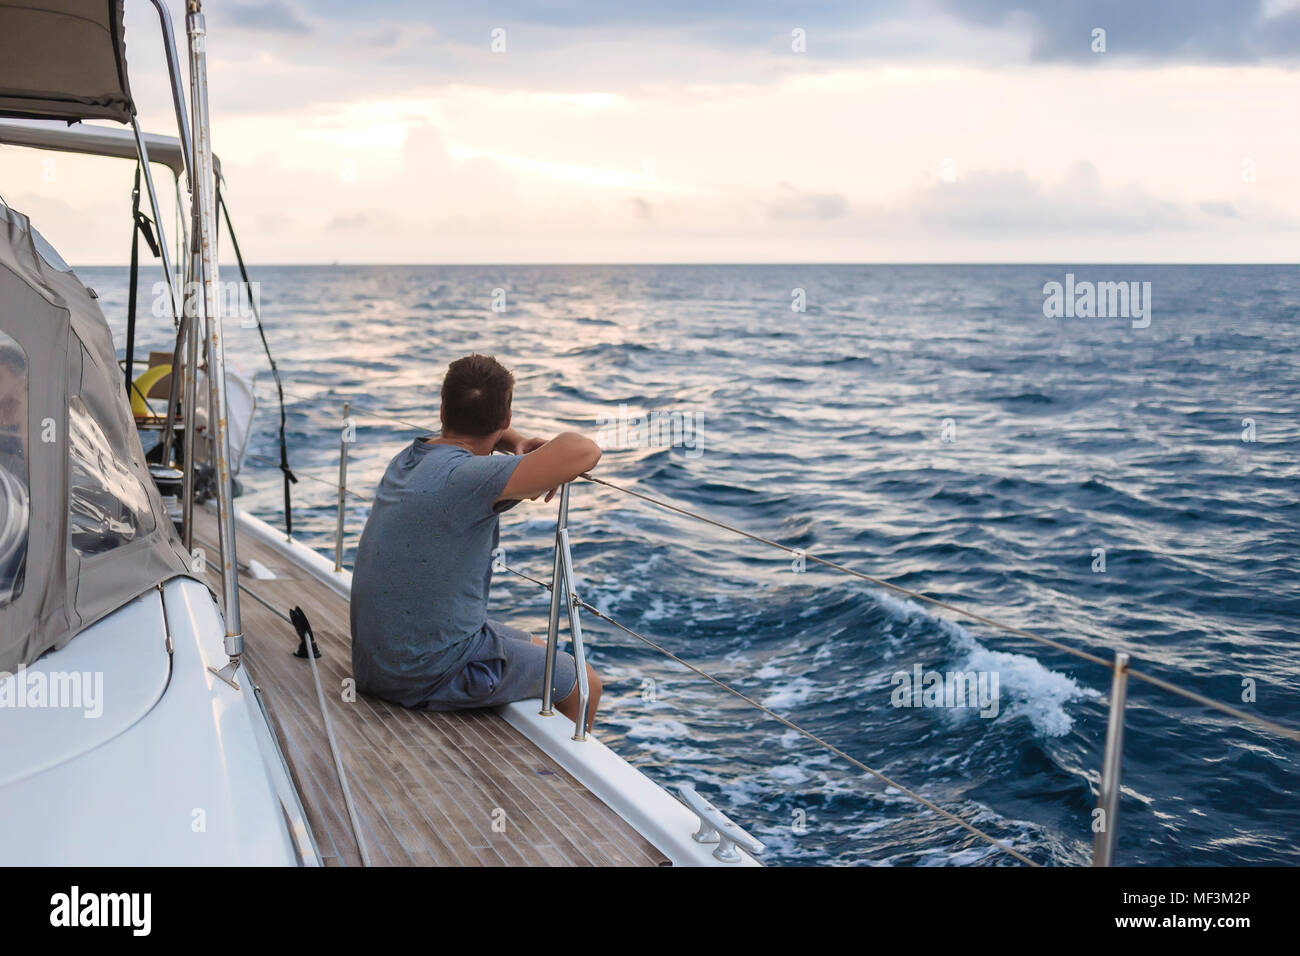 Indonesia, Lombok island, man sitting on deck of a sailing boat - Stock Image